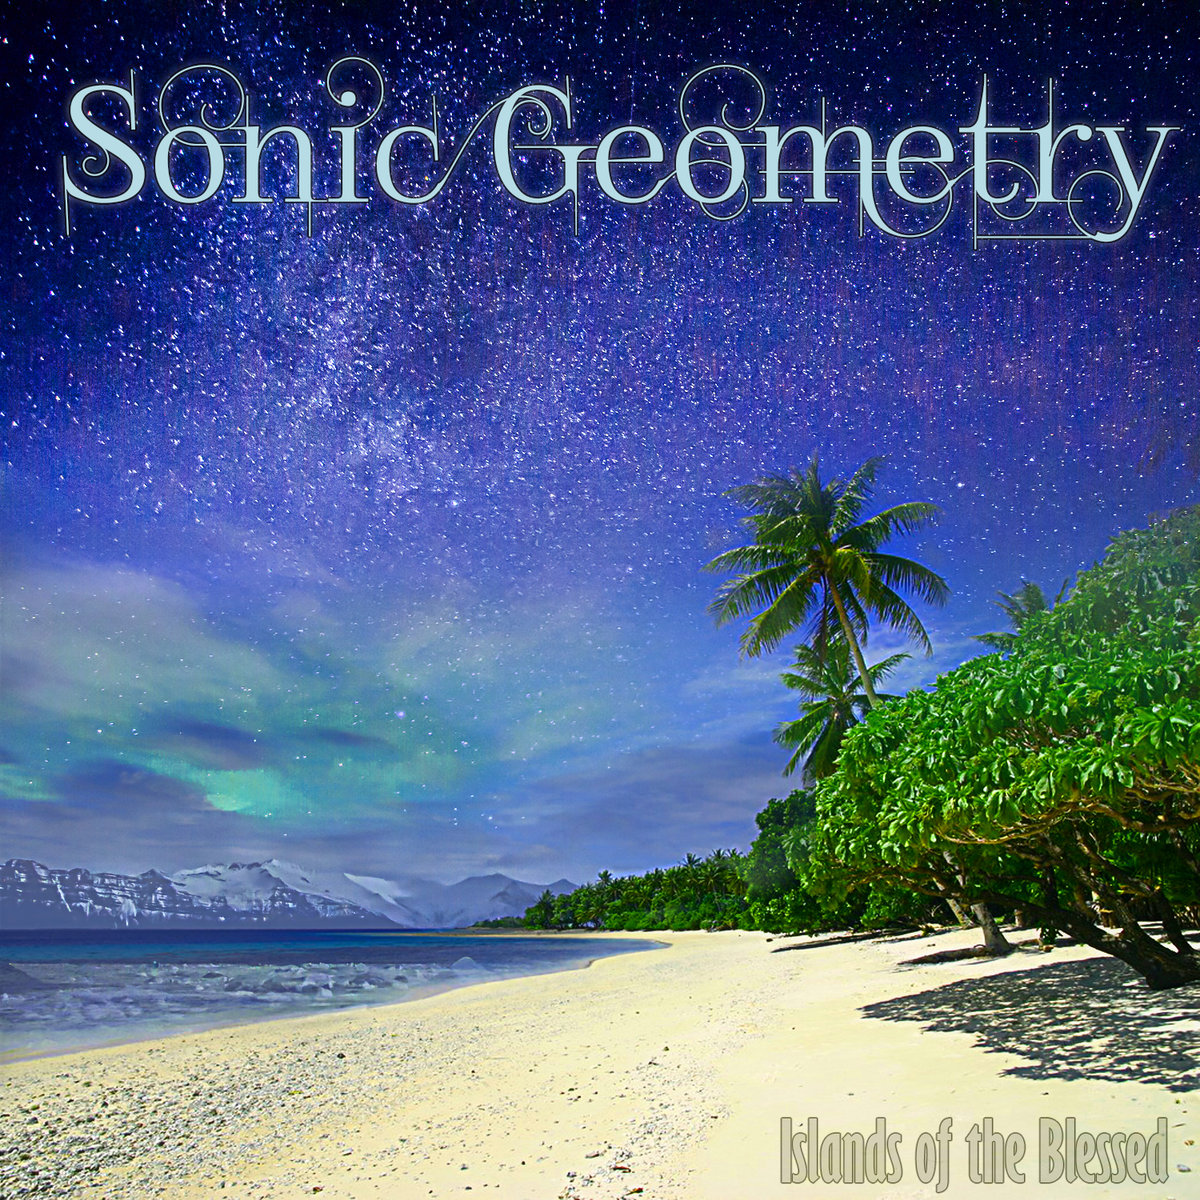 Sonic Geometry - Islands of the Blessed @ 'Islands of the Blessed' album (bass, electronic)